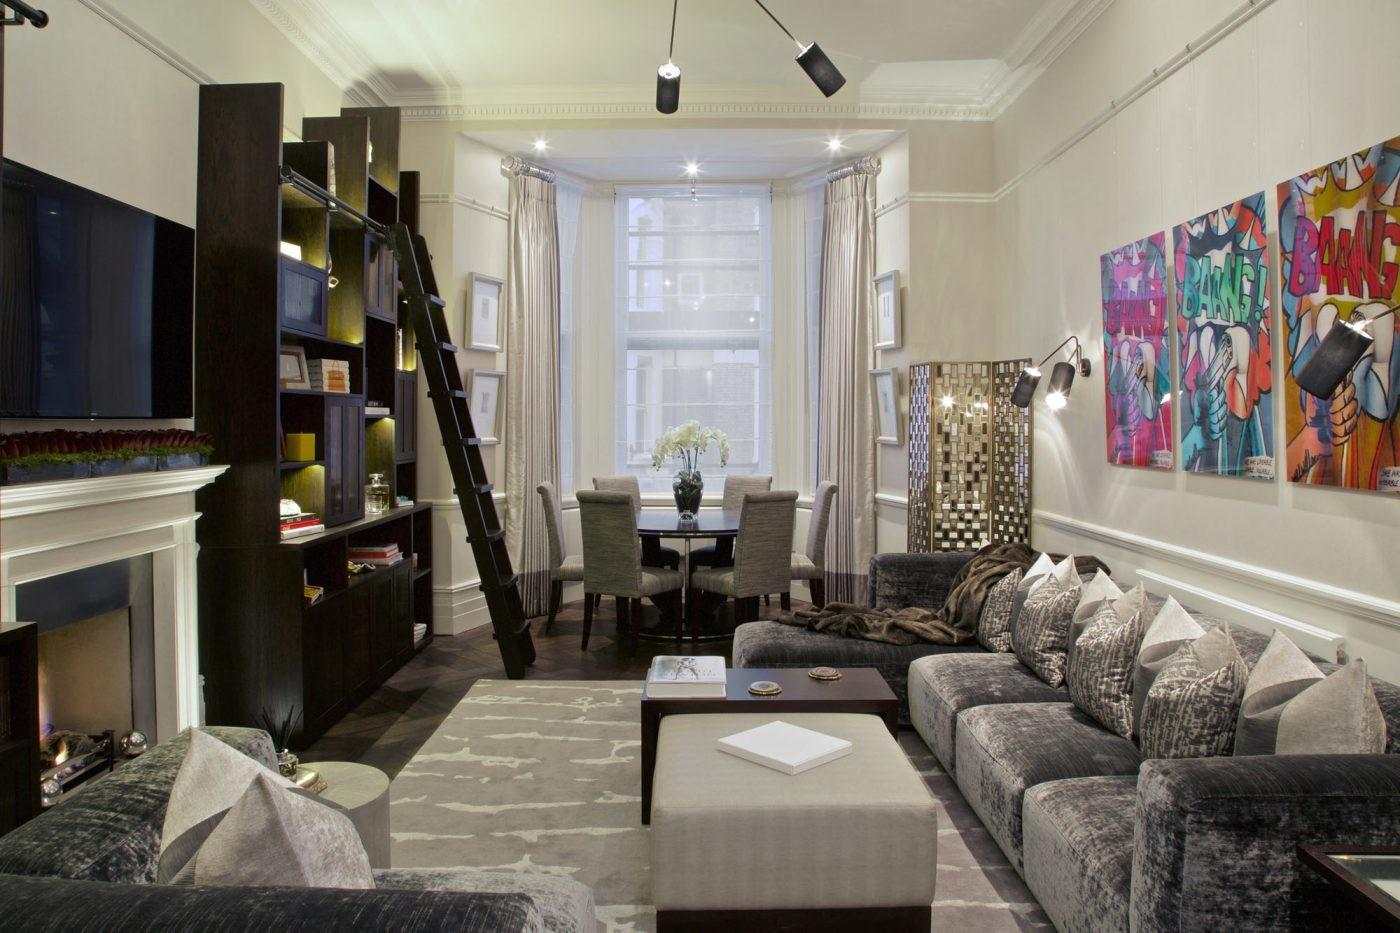 Redcliffe Square Ultimate City Bachelor Pad Wilben